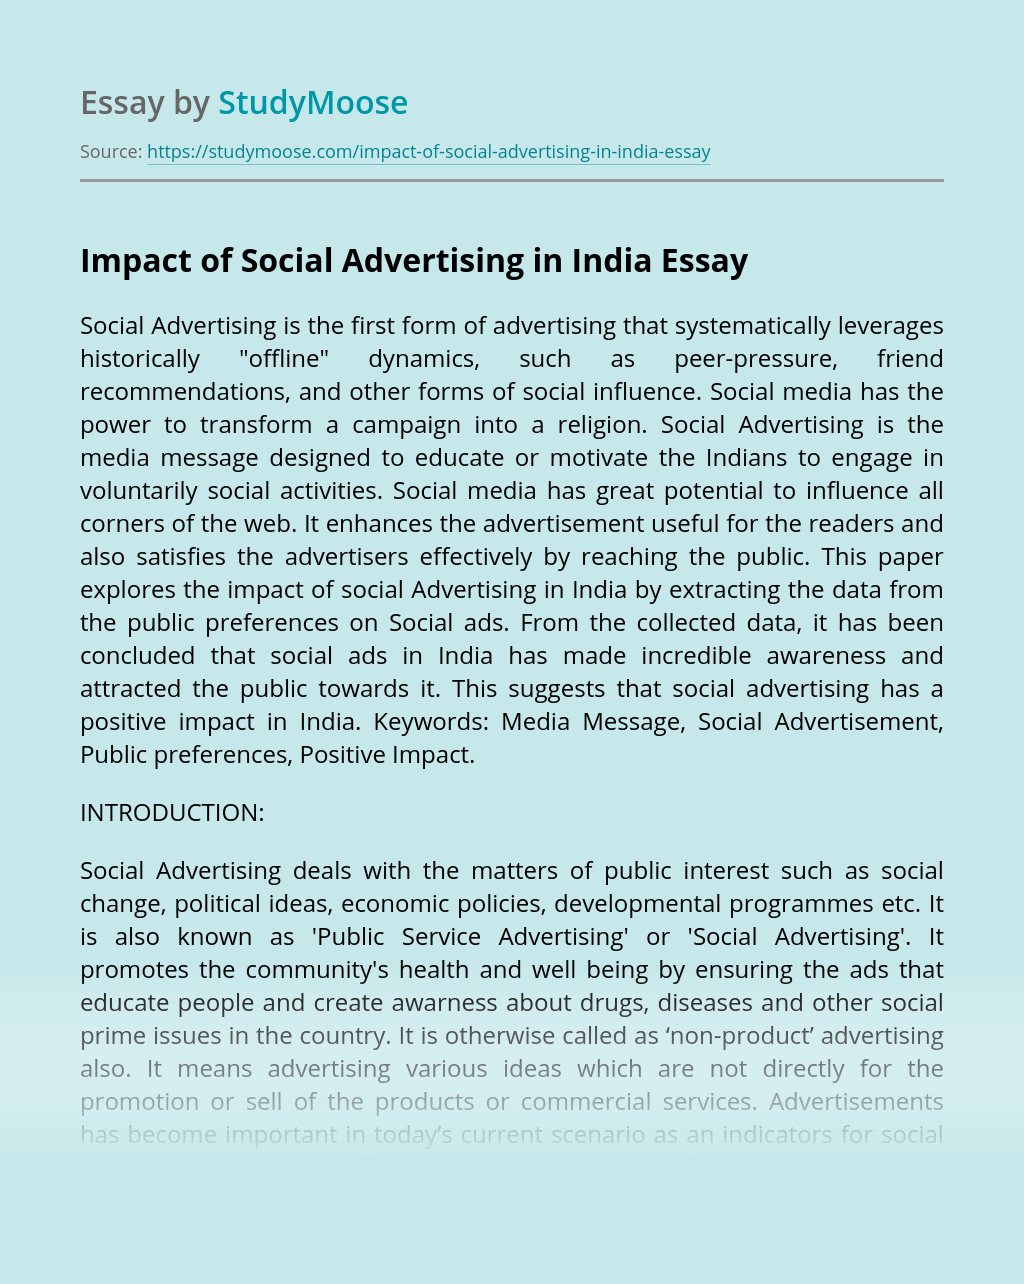 Impact of Social Advertising in India